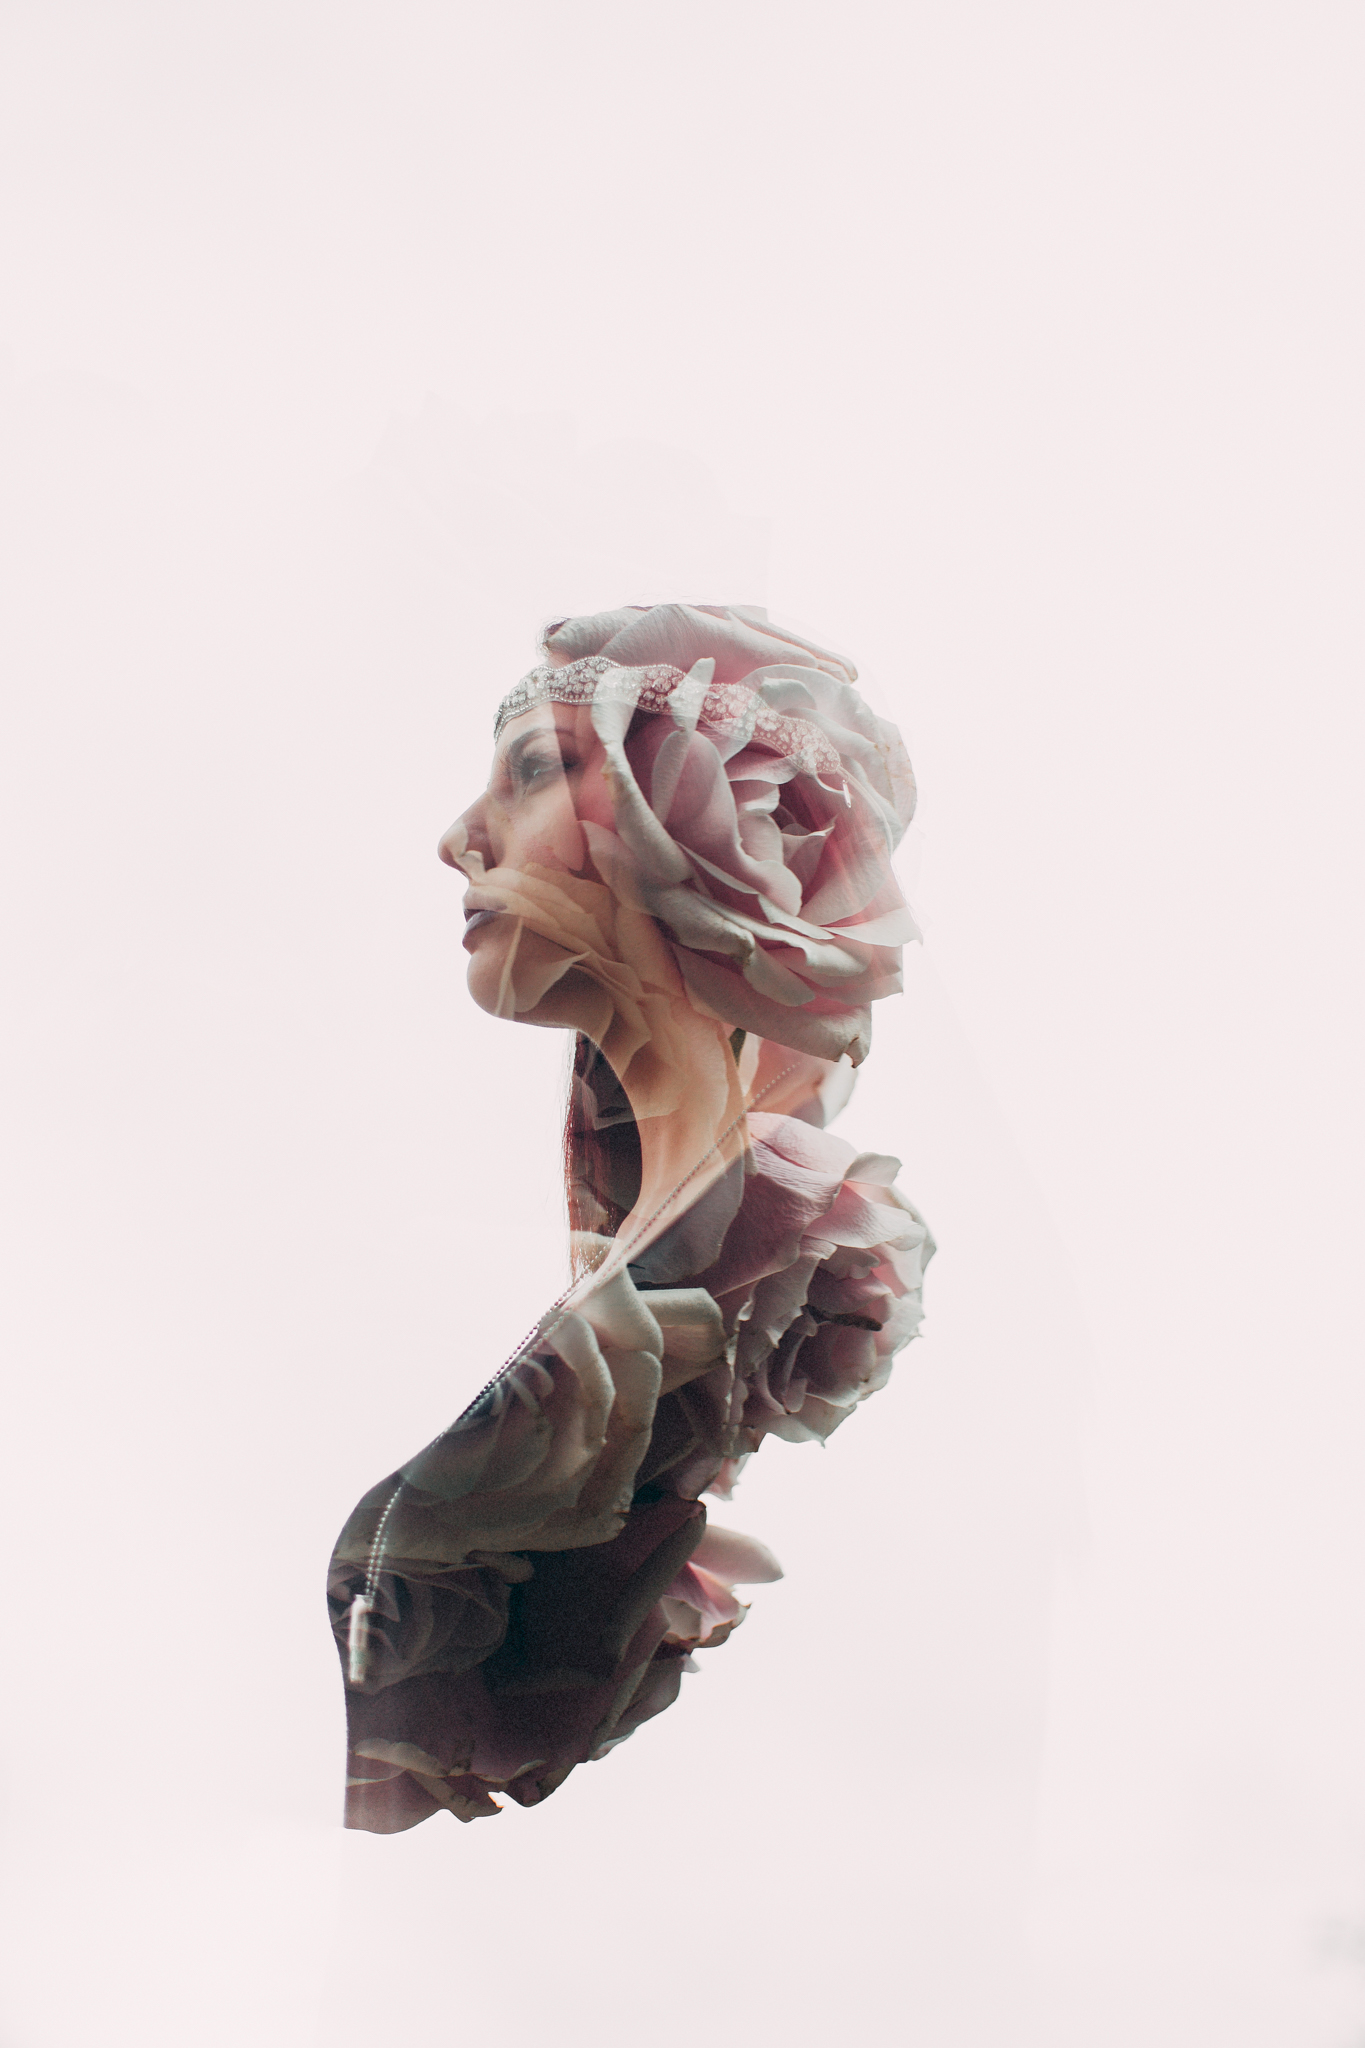 double exposure-21-Edit.jpg